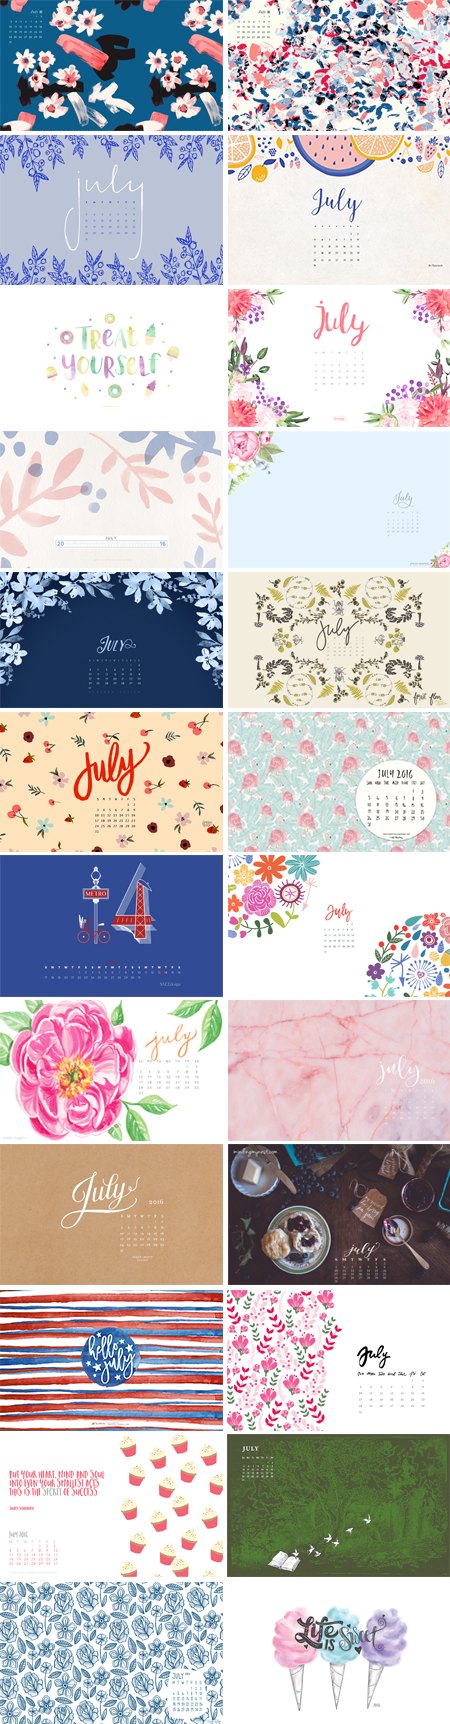 // July 2016 Wallpapers Round-up